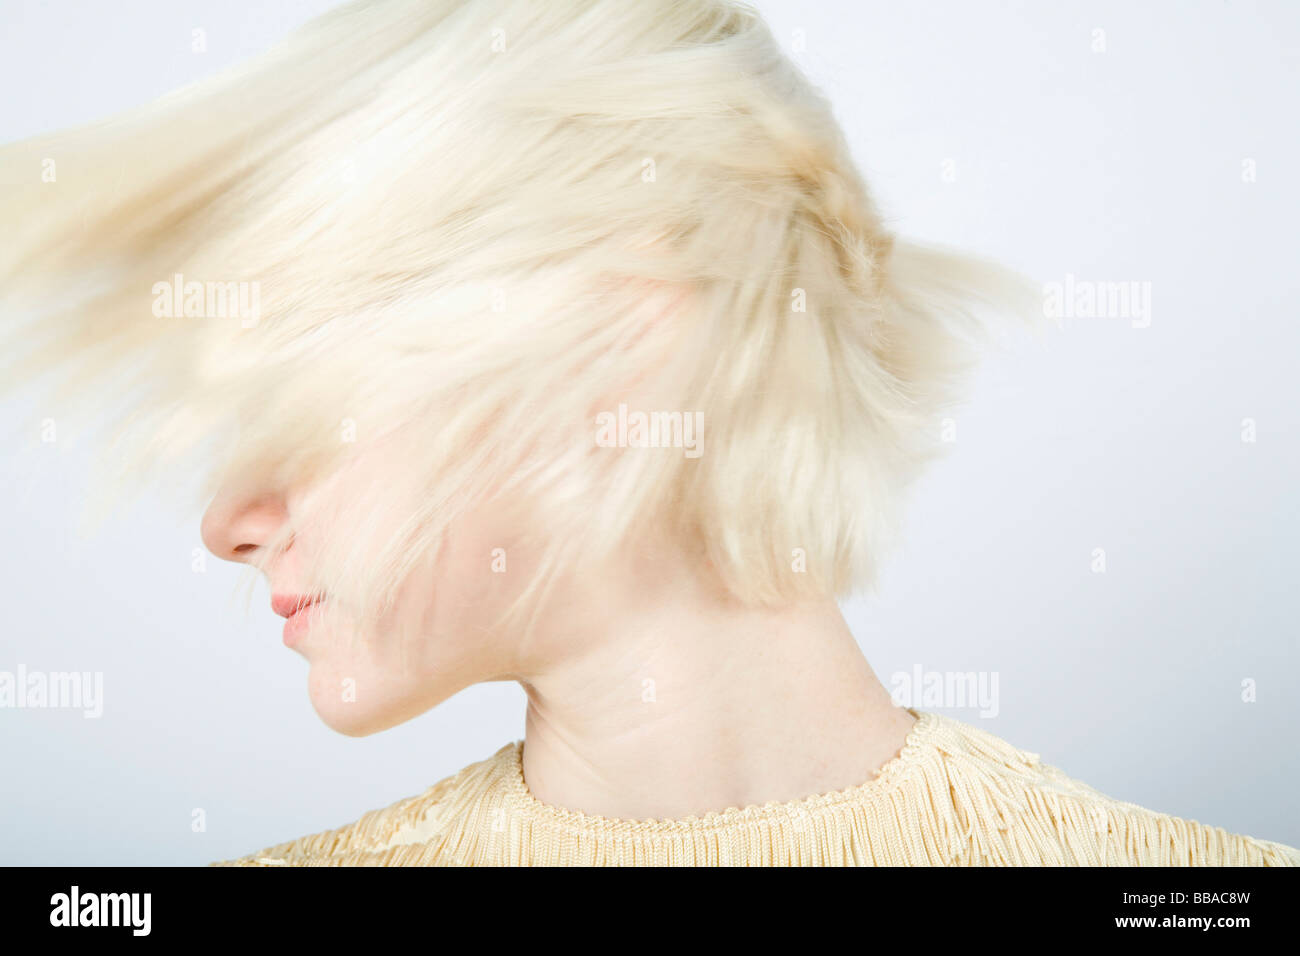 A young woman shaking her hair - Stock Image